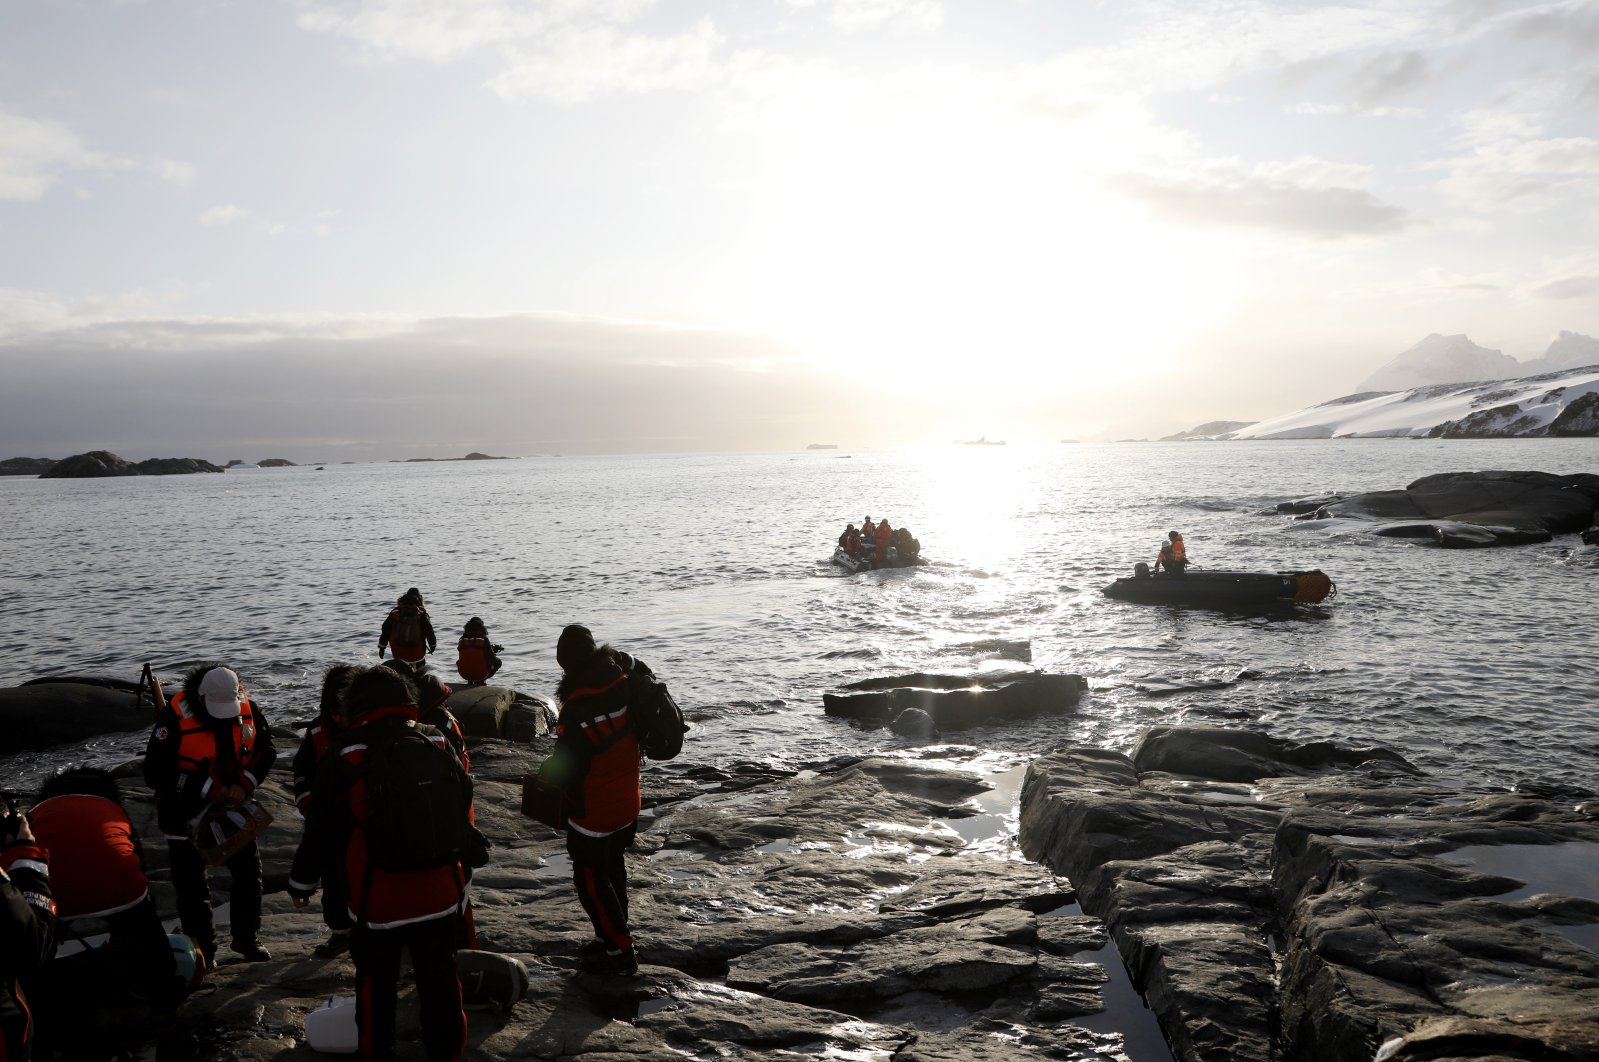 The Turkish team gathers their belongings to take them back to the ship. (Photo by Hayrettin Bektaş)